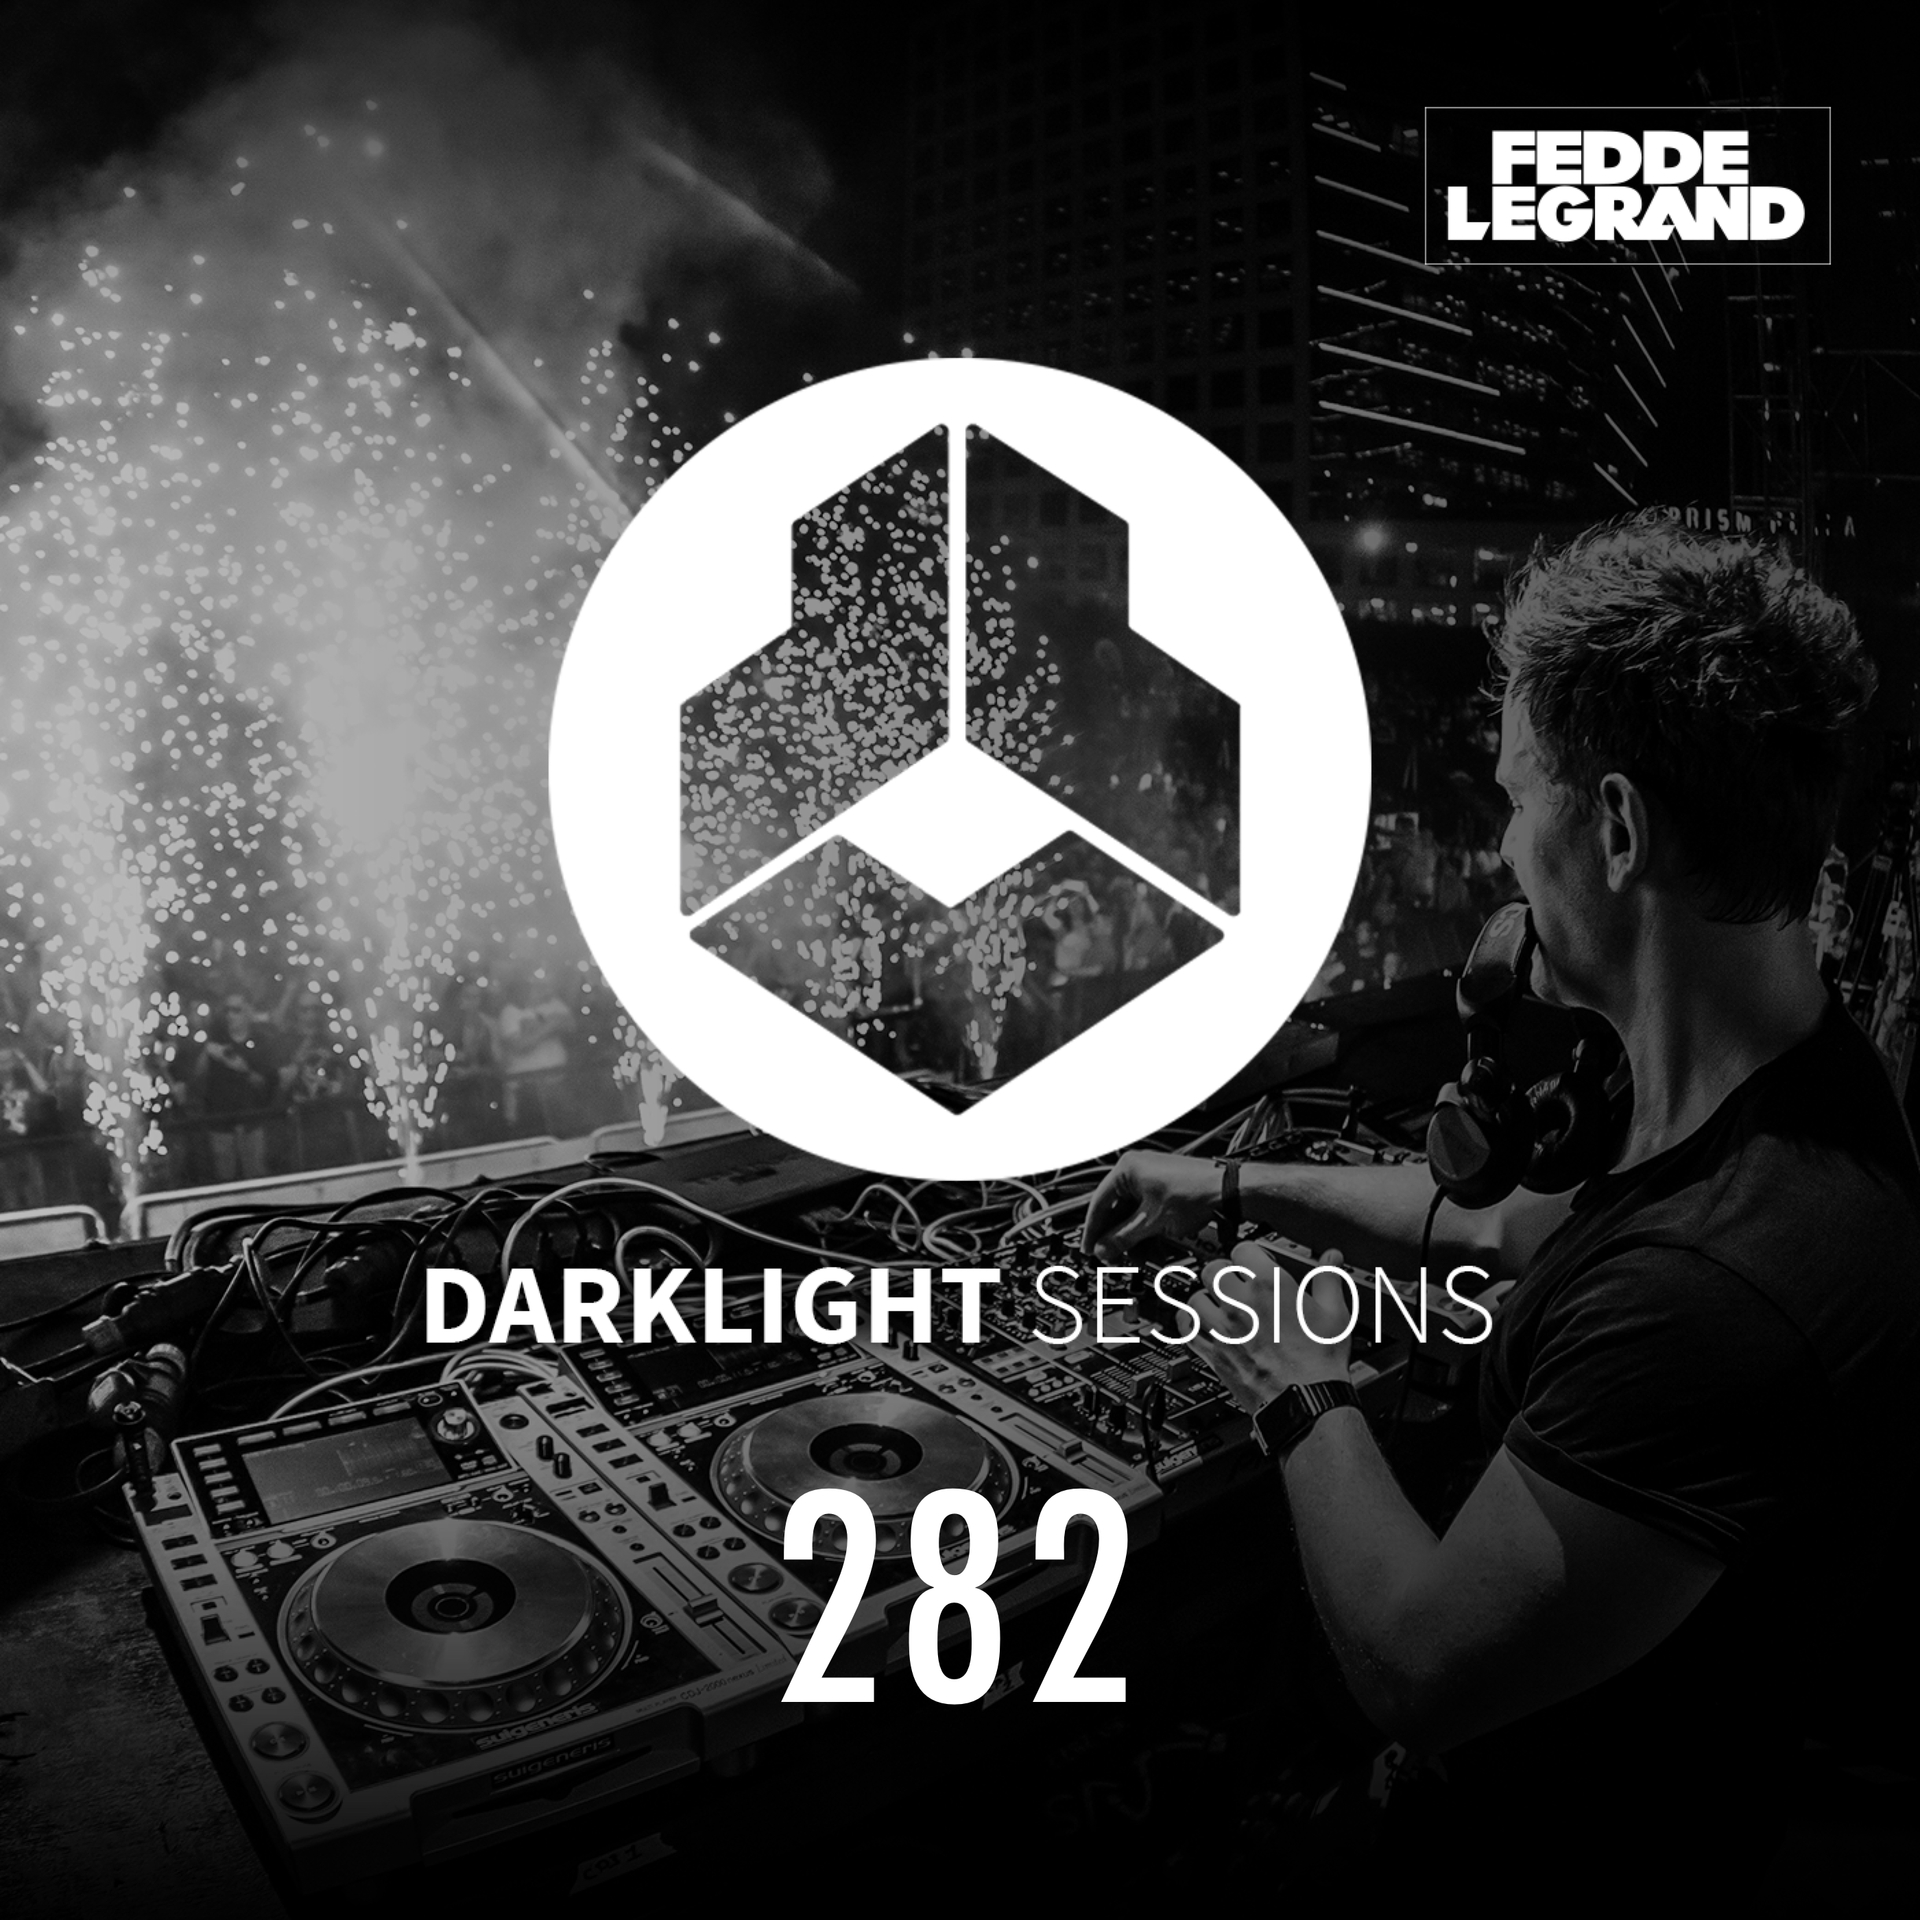 Darklight Sessions 282